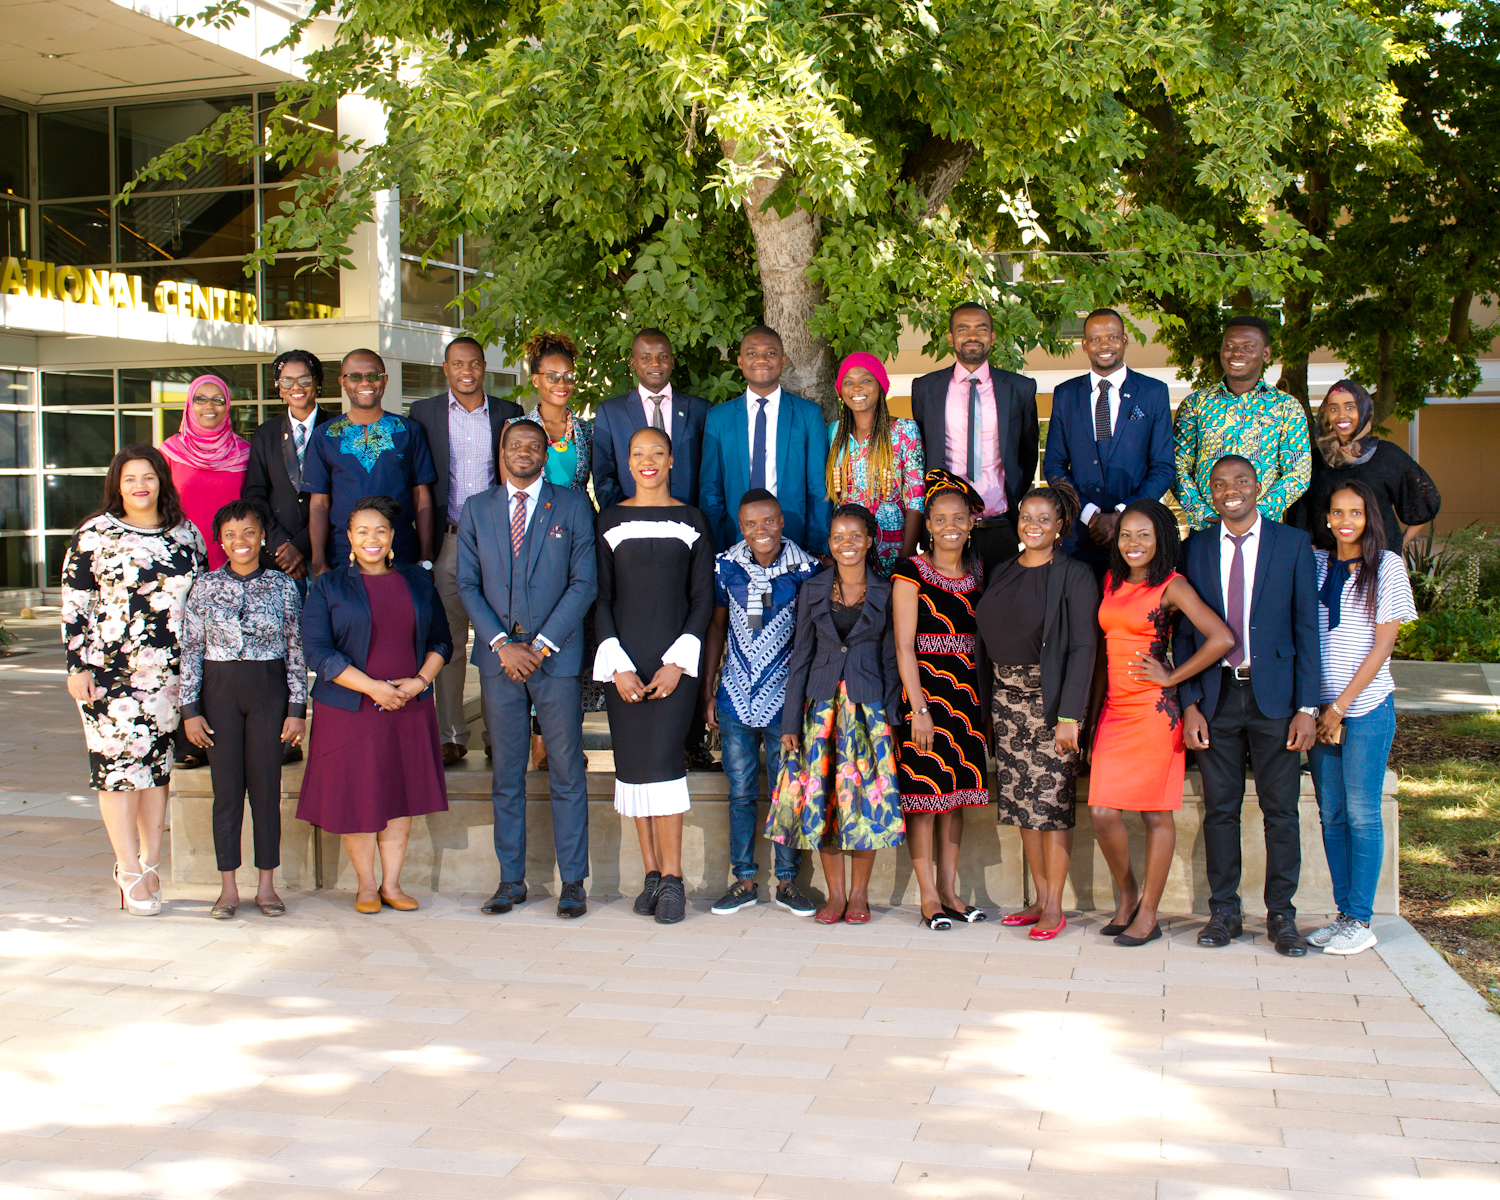 2018 Mandela Fellow Group Photo at International Center